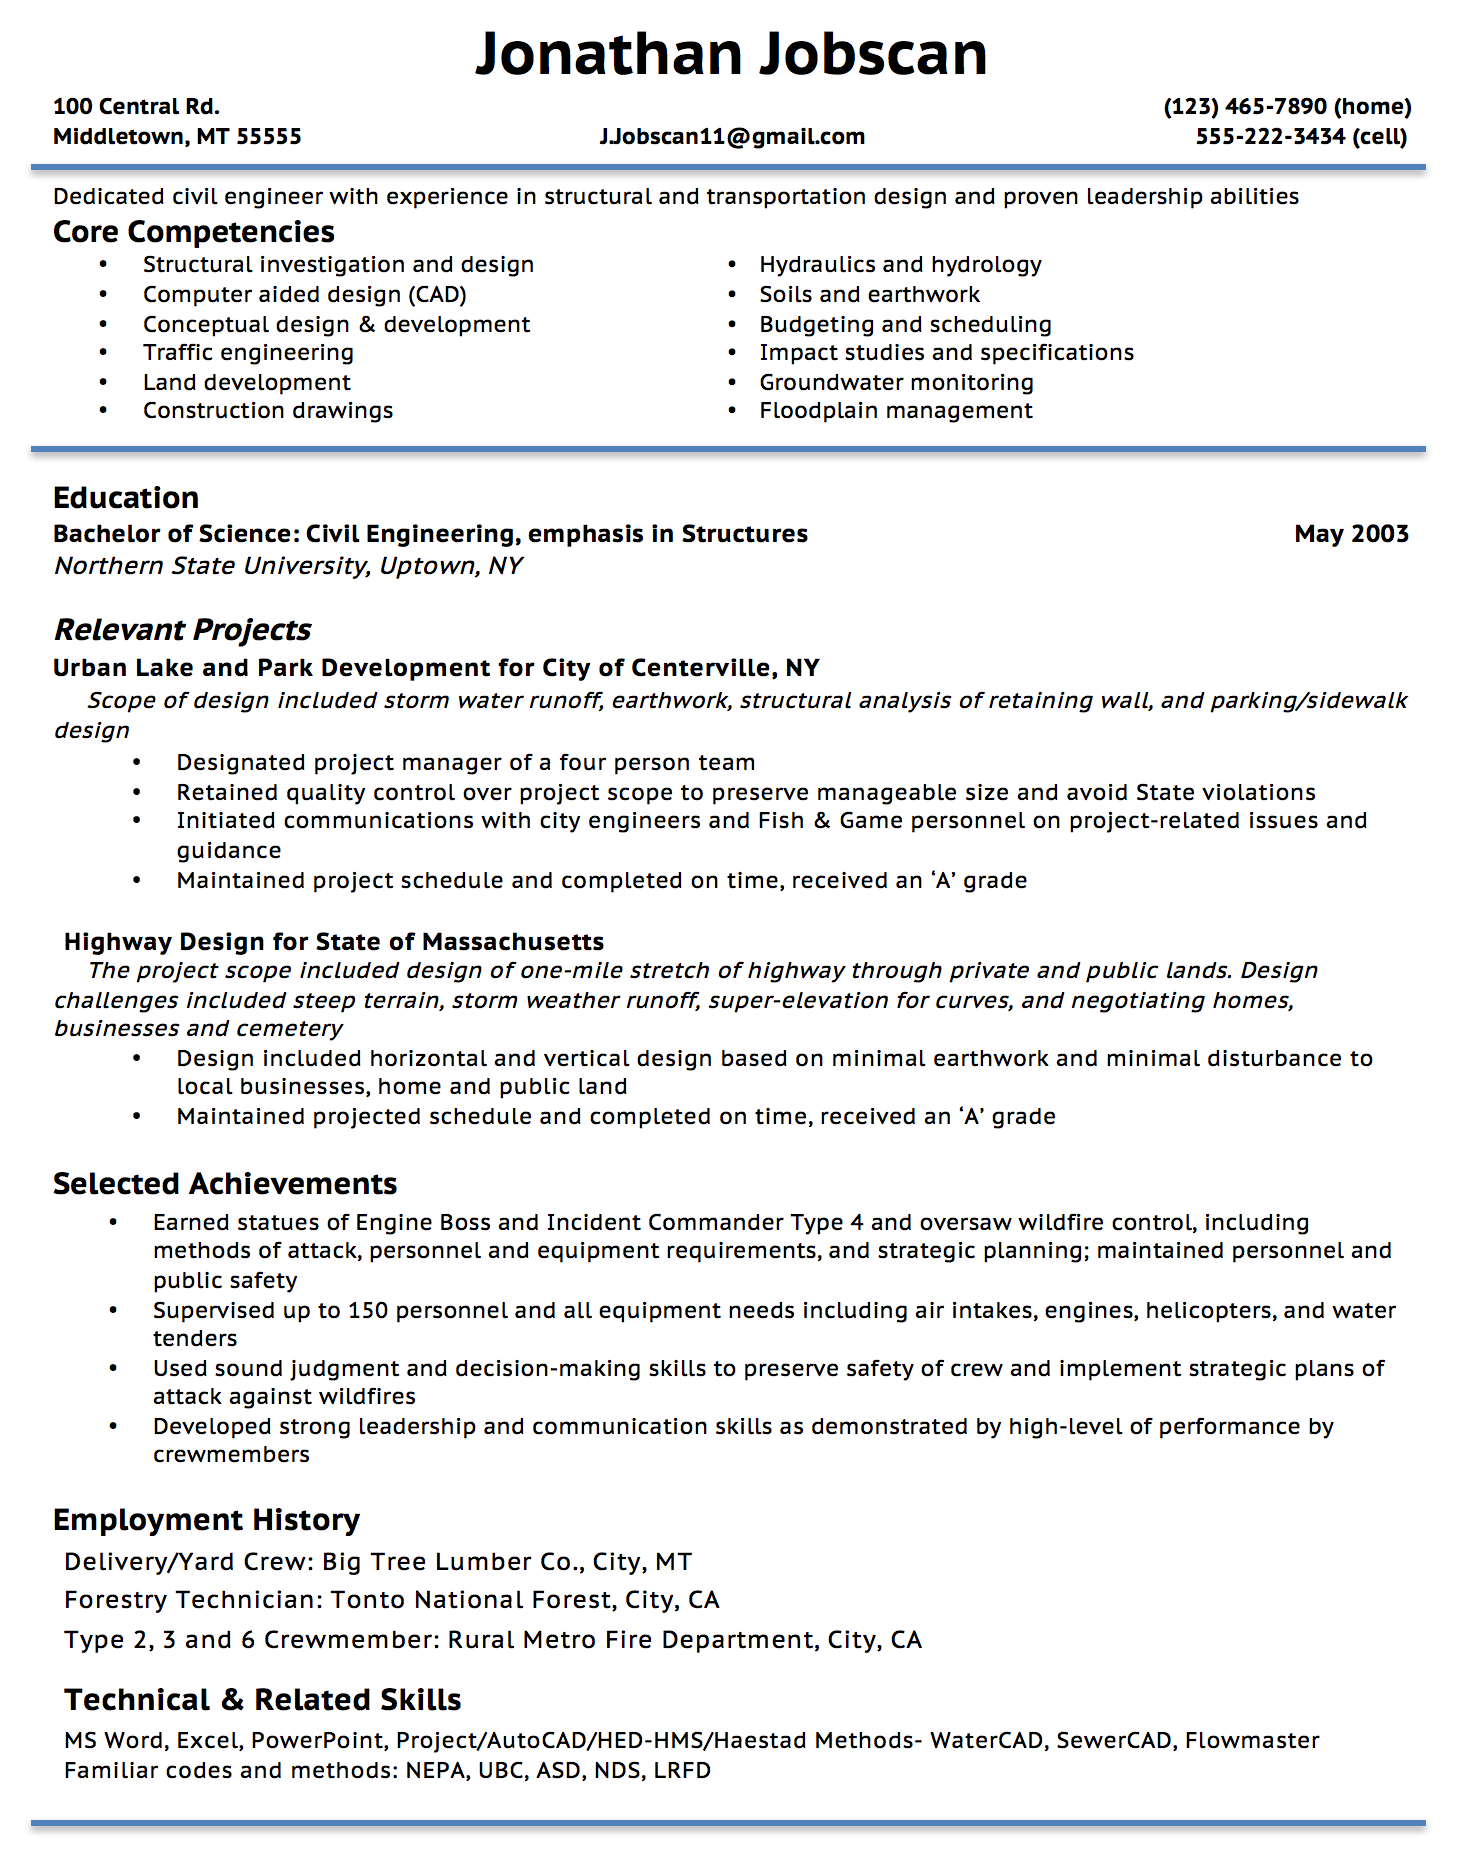 Opposenewapstandardsus  Pretty Resume Writing Guide  Jobscan With Fascinating Example Of A Functional Resume Format With Delightful Best Resume Template Also It Resume In Addition Good Resume And Resum As Well As Create Resume Additionally Student Resume From Jobscanco With Opposenewapstandardsus  Fascinating Resume Writing Guide  Jobscan With Delightful Example Of A Functional Resume Format And Pretty Best Resume Template Also It Resume In Addition Good Resume From Jobscanco